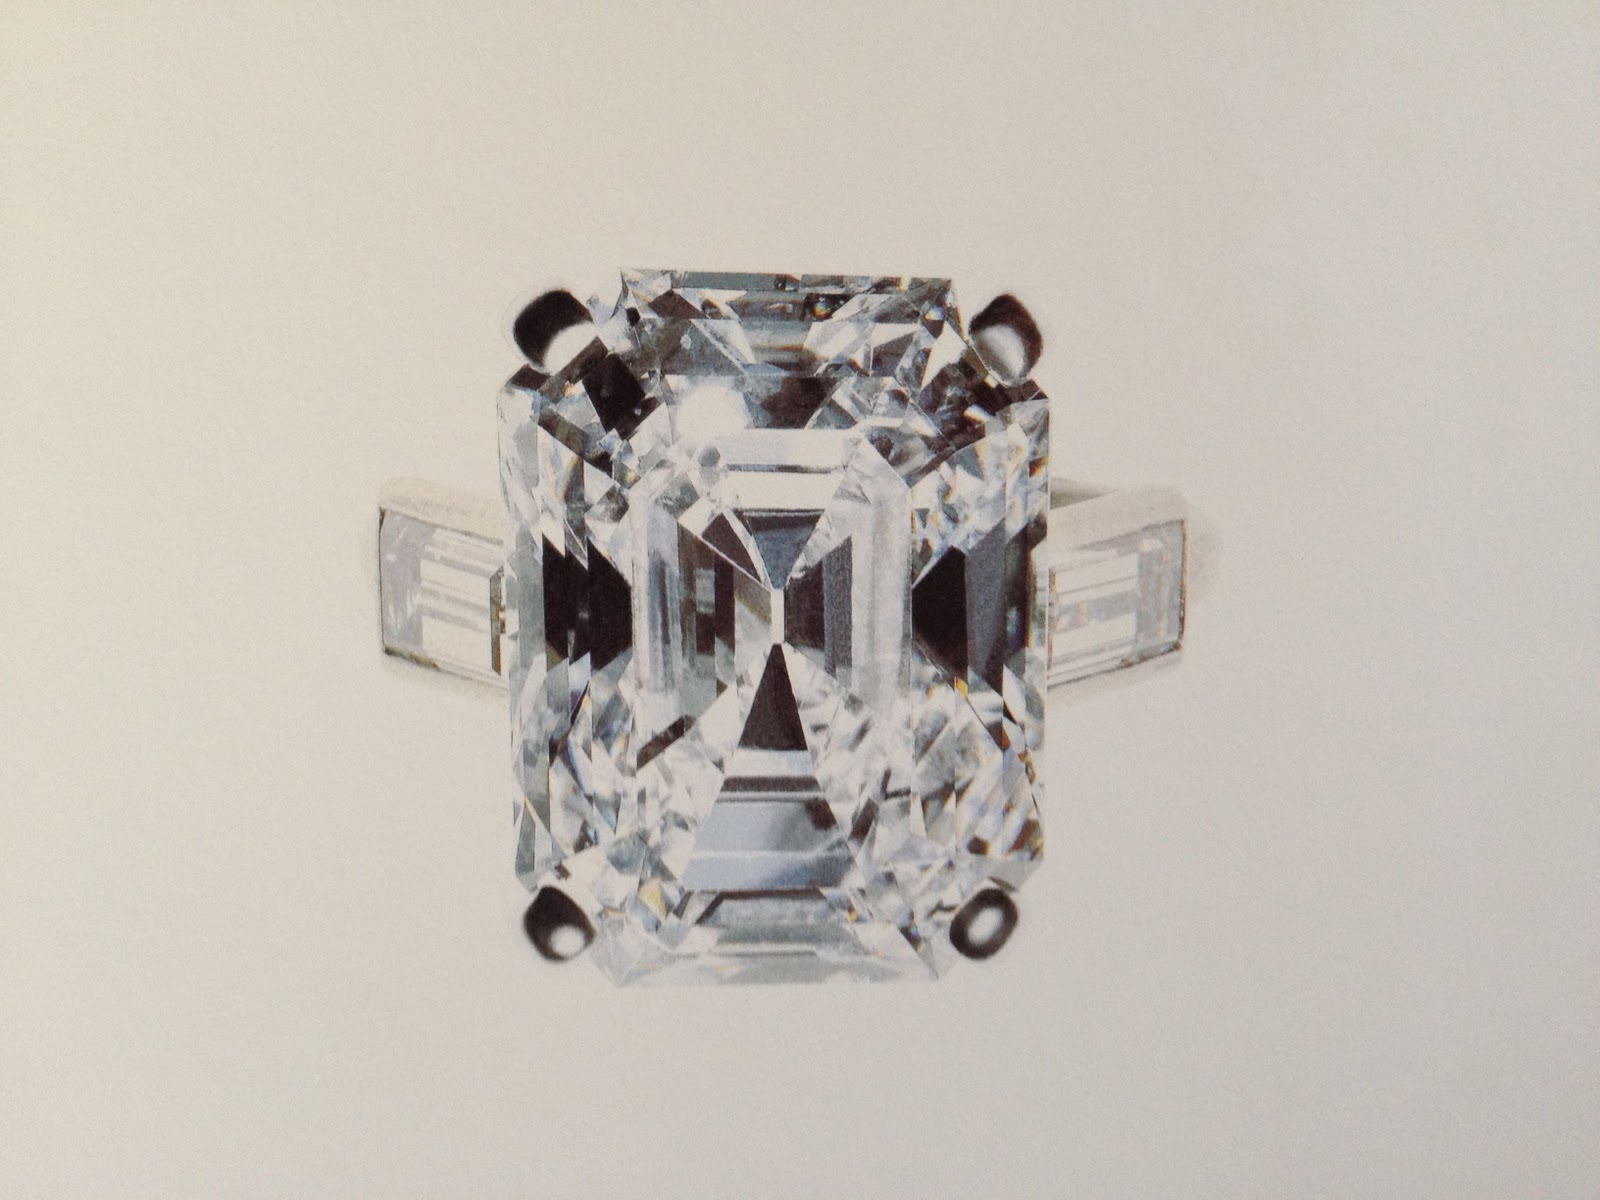 the diamond engagement ring presented to grace kelly